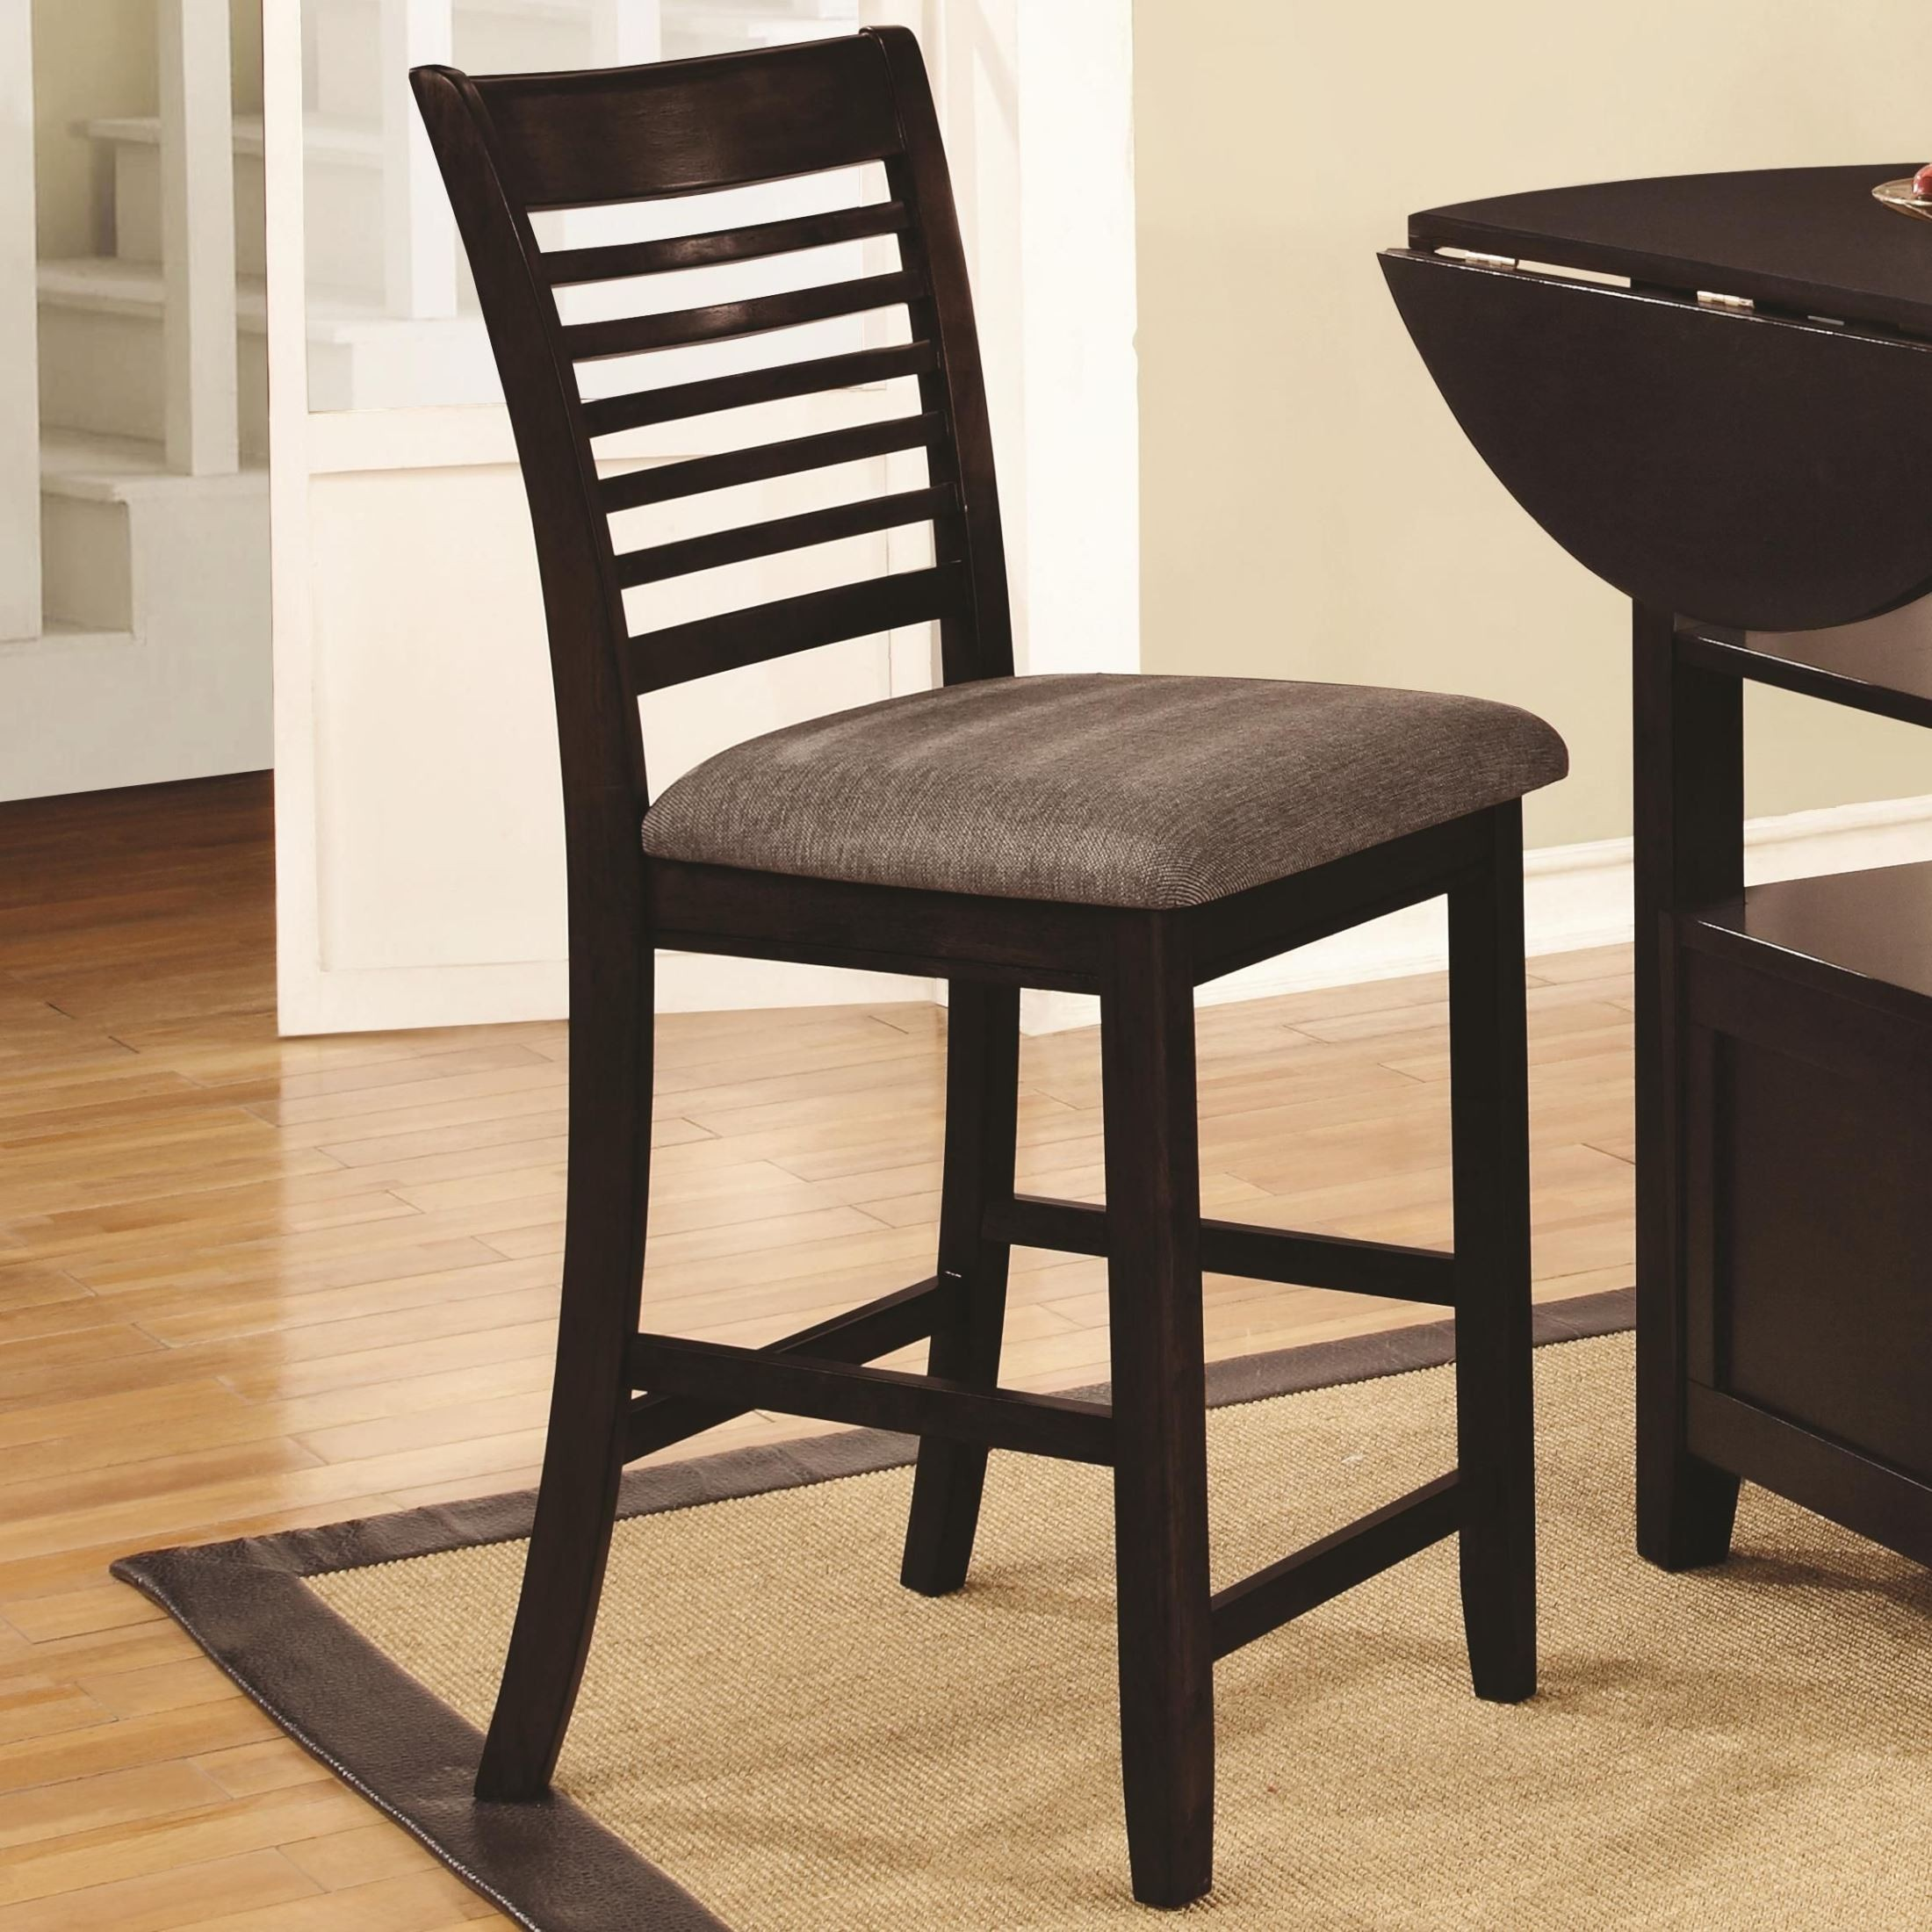 Stockton charcoal upholstered counter height chair set of 2 105399